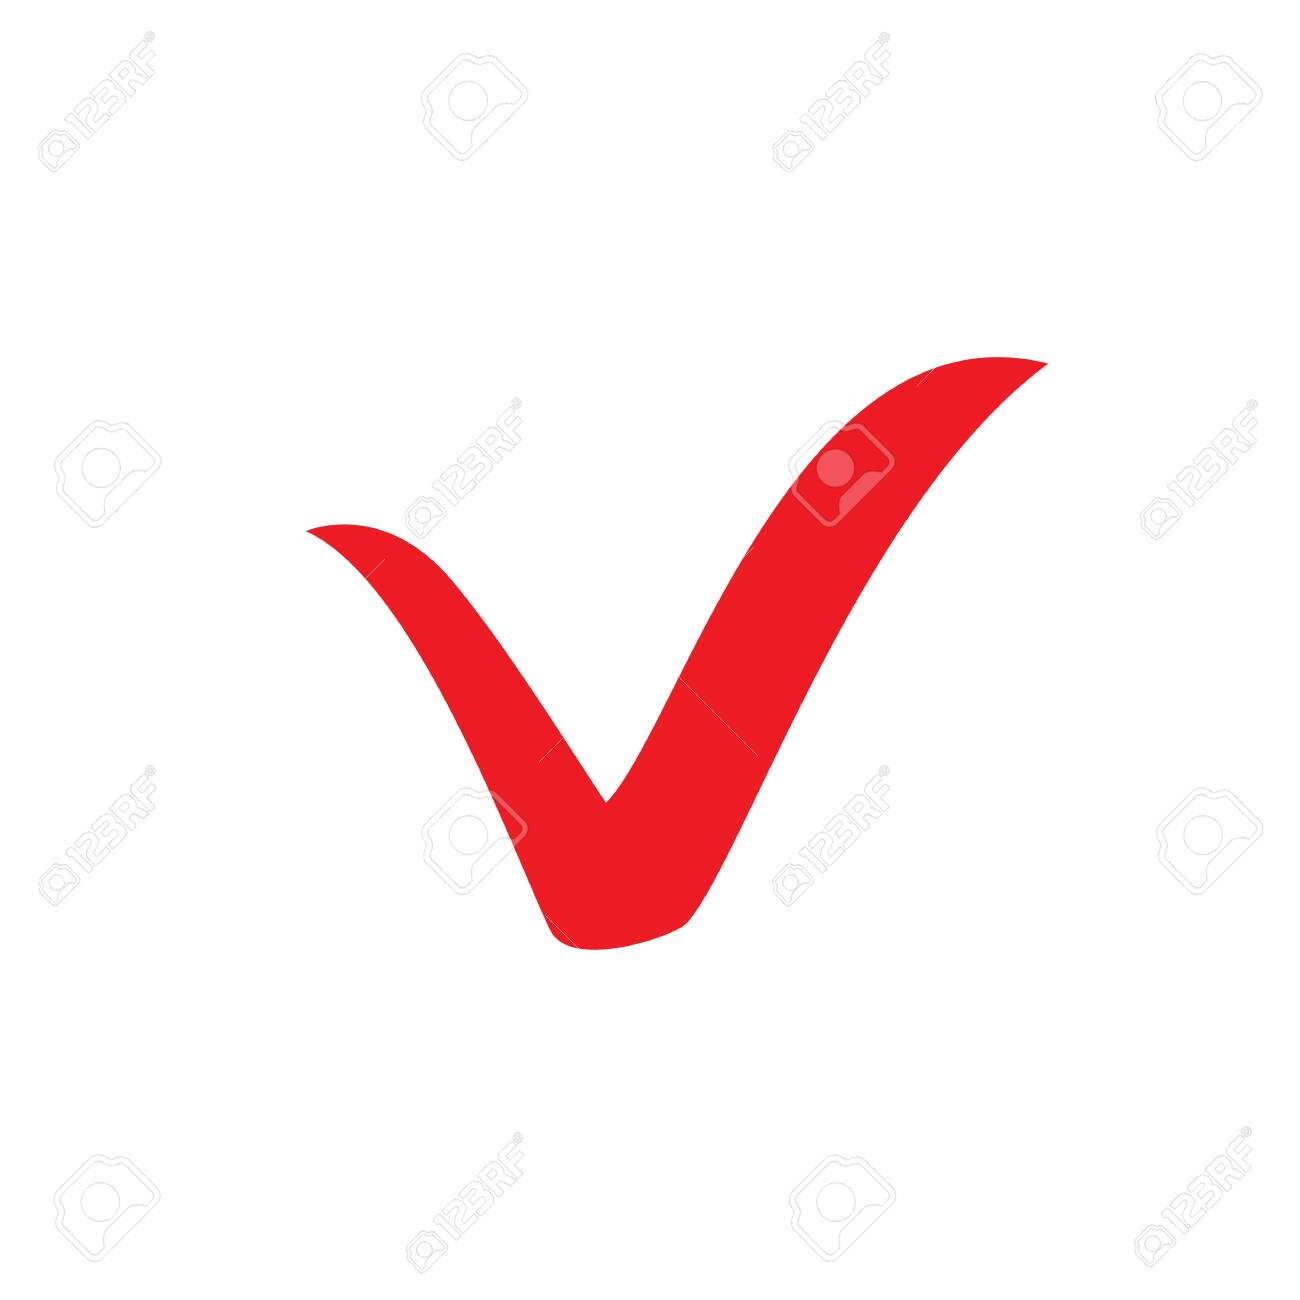 Red check mark icon  Tick symbol, tick icon vector illustration